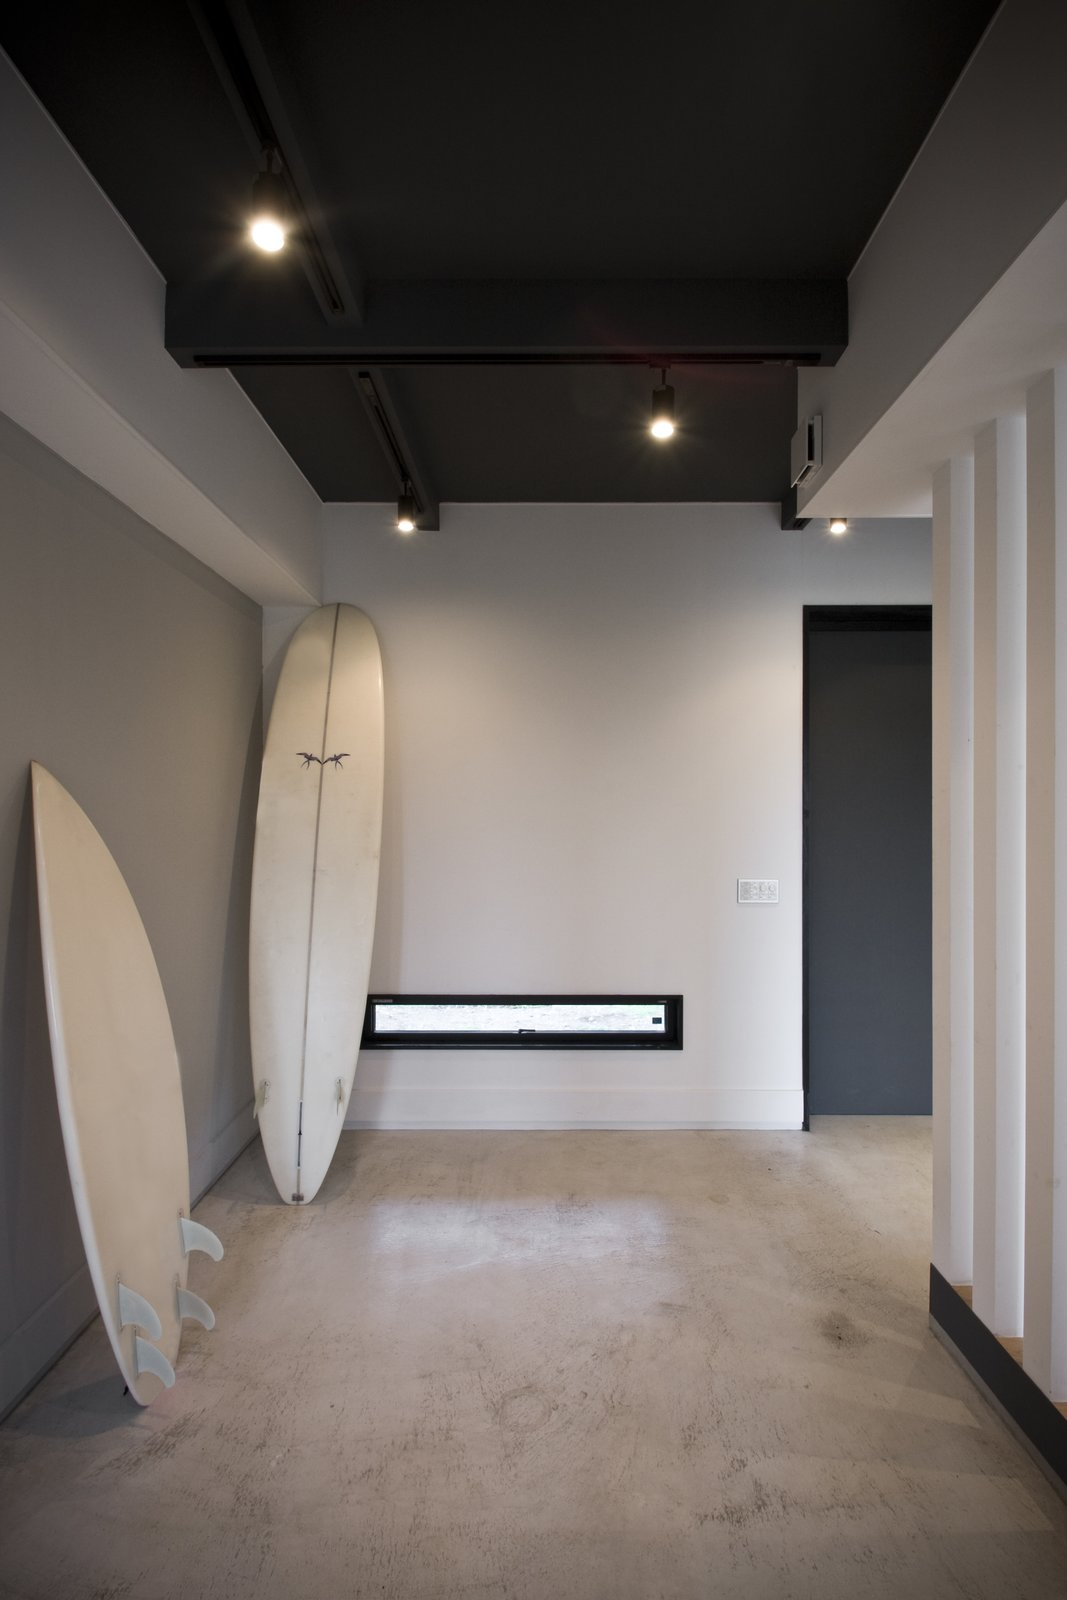 The family's love of surfing was a main inspiration for the space. It is designed to be a relaxing getaway with few distractions from the sea and surrounding nature.  Photo 5 of 7 in This Minimal Japanese Getaway Was Built for Surfing